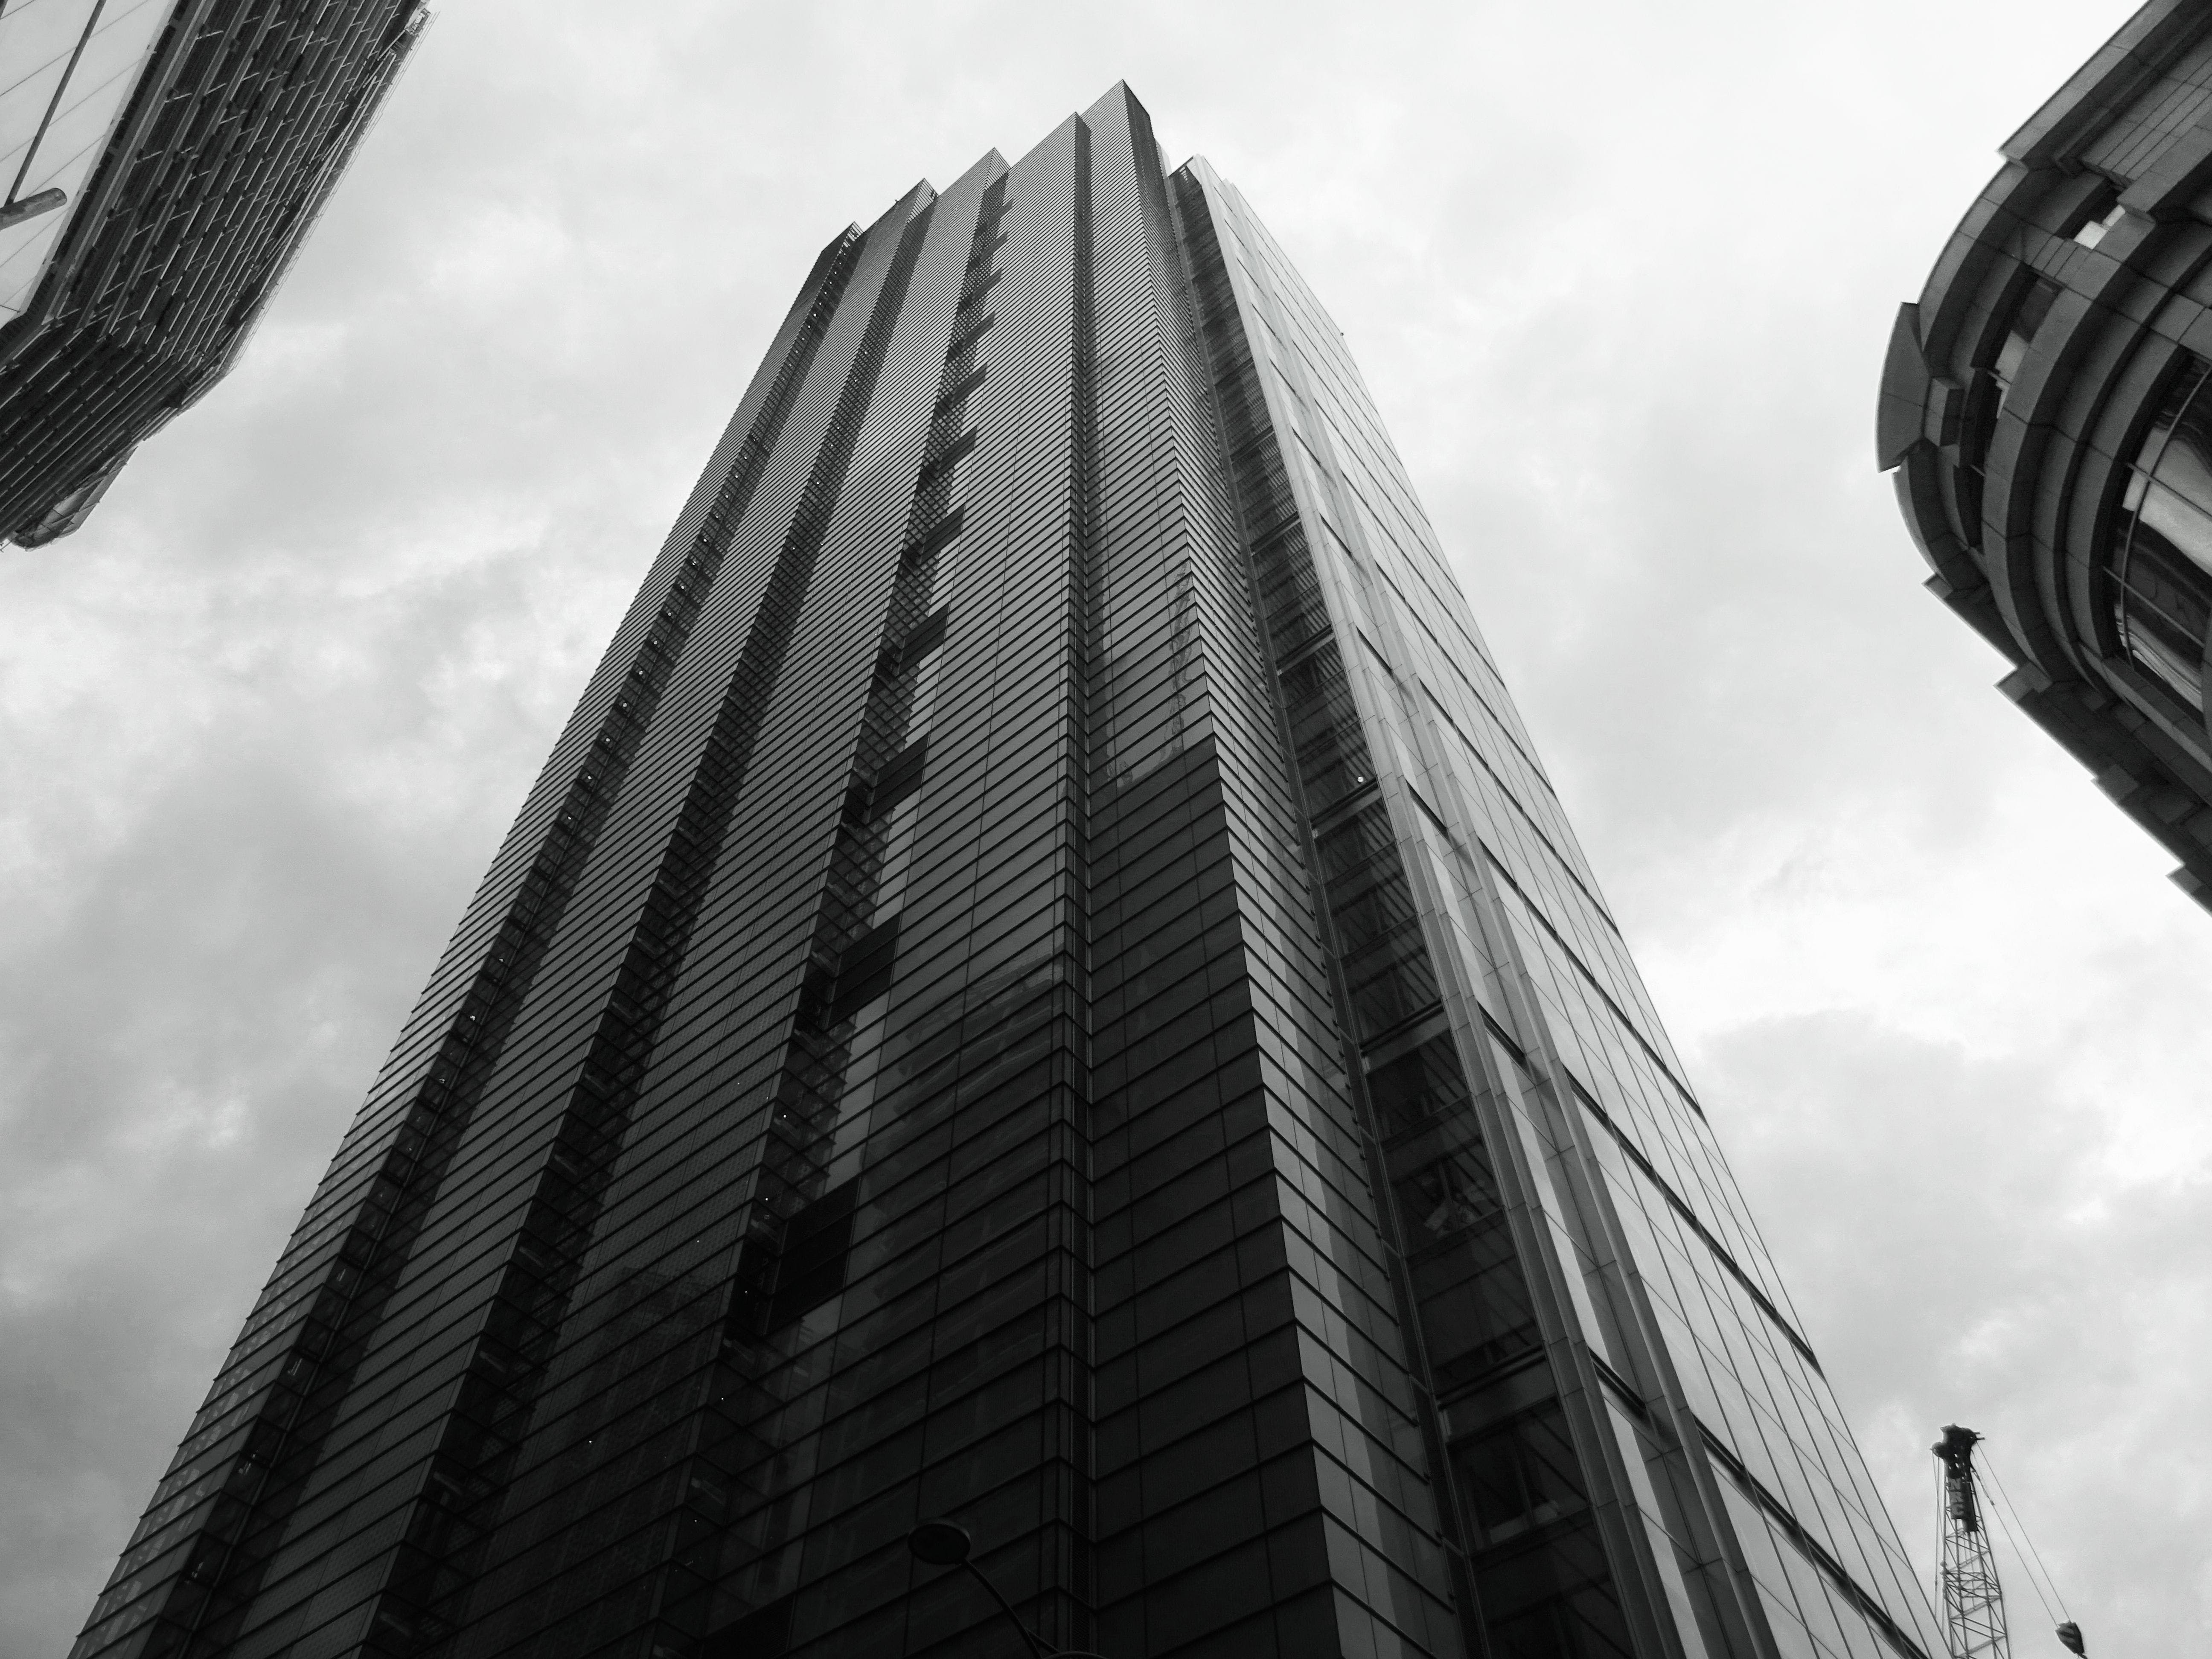 architecture, black-and-white, buildings